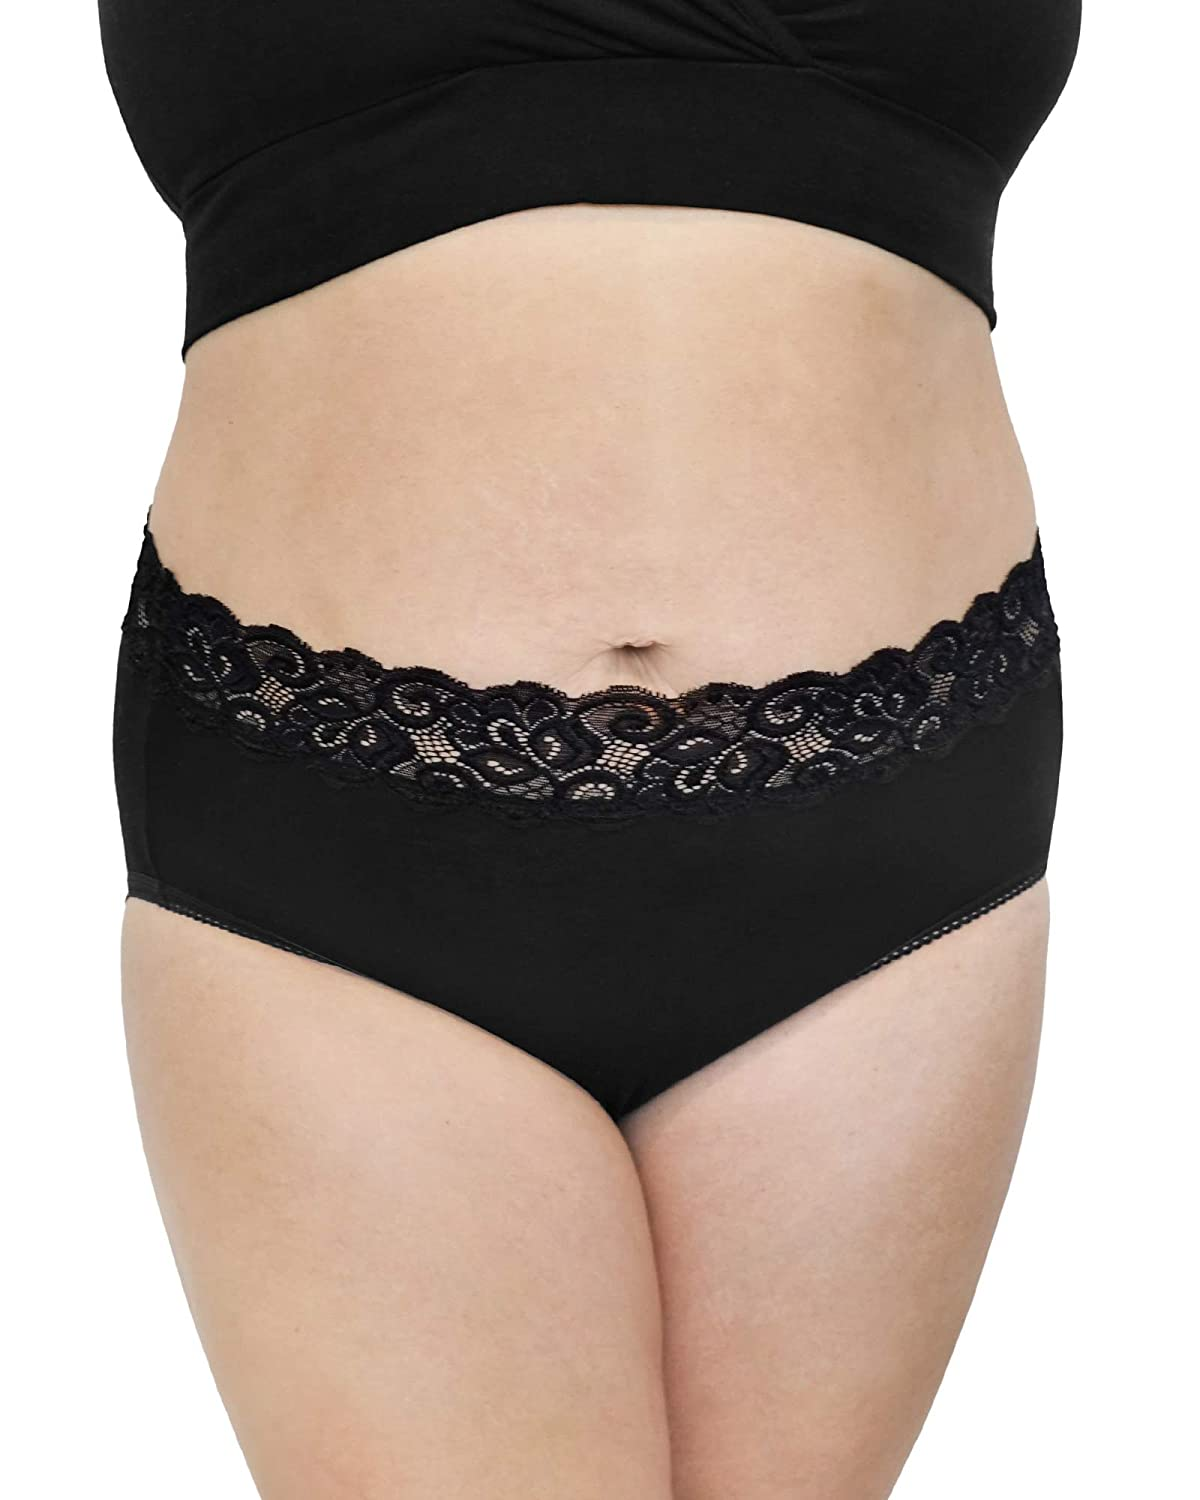 Kindred Bravely High Waist Postpartum Underwear /& C-Section Recovery Maternity Panties